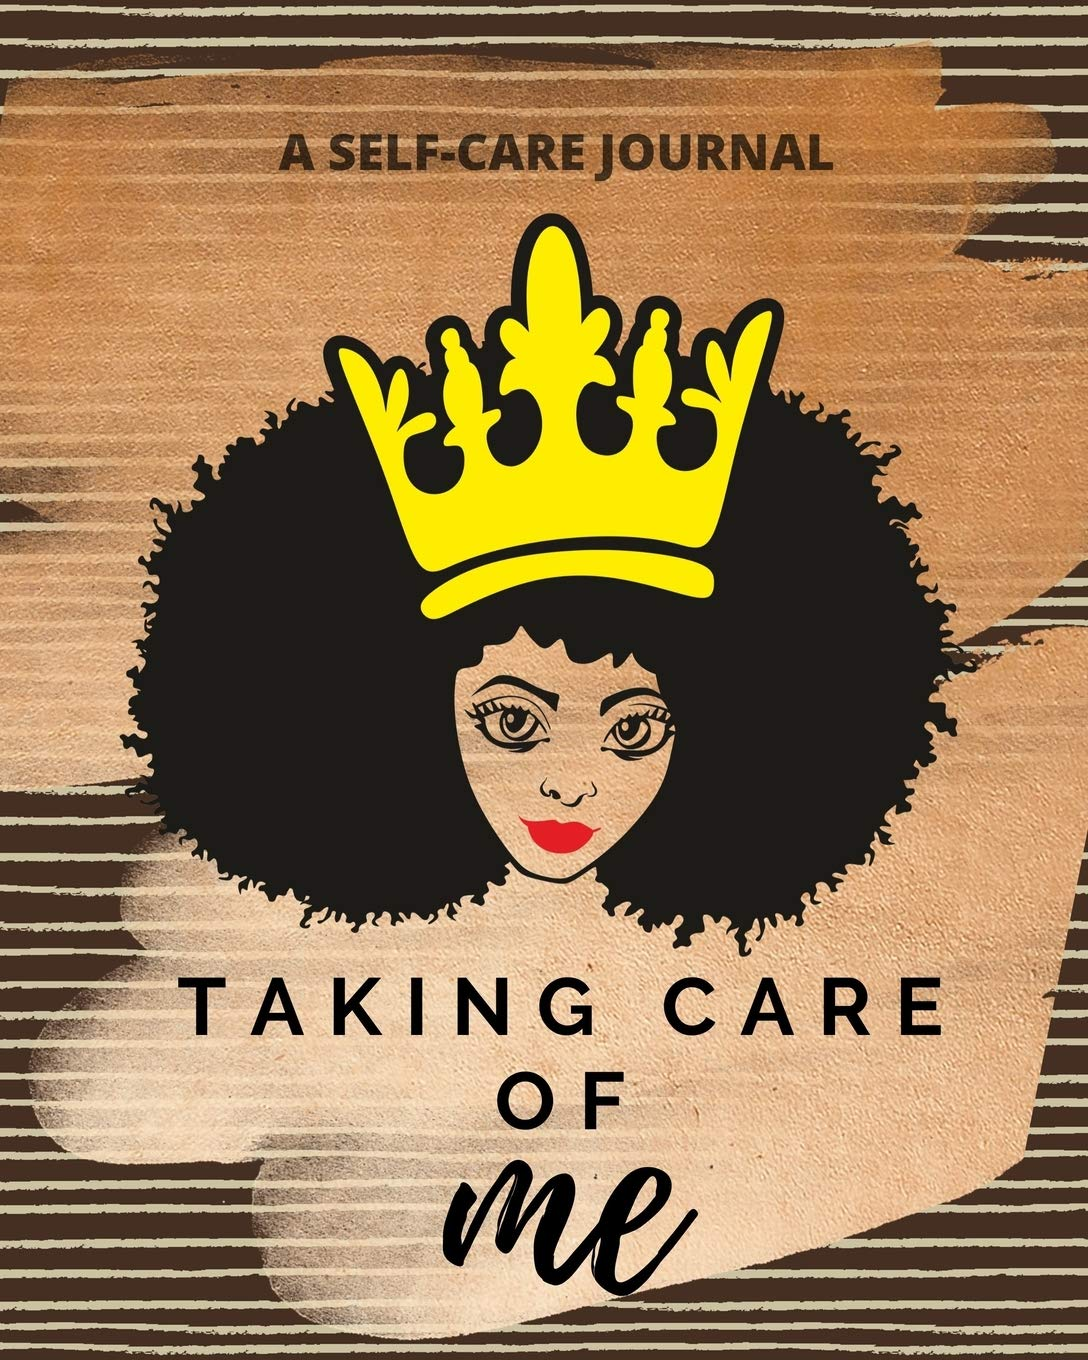 Taking Care Of Me A Self Care Journal For Black Women African American Gifts For Mindfulness Wellness And Gratitude Self Care Checklist And Tracker Melanin Magic Journals 9781705924785 Amazon Com Books,Mixed Bag Designs Promo Code